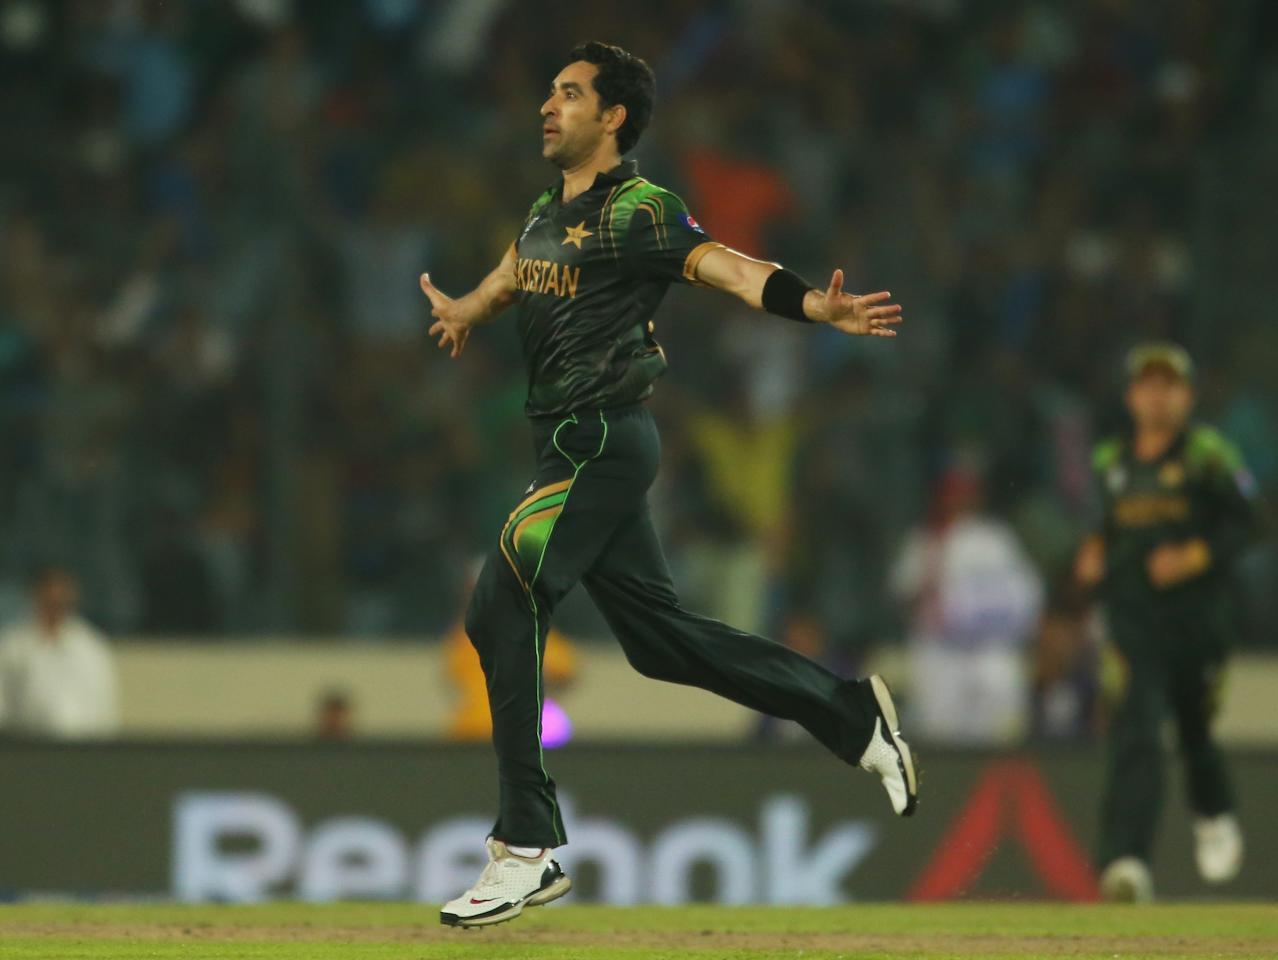 DHAKA, BANGLADESH - MARCH 23:  Umar Gul of Pakistan celebrates after dismissing Nathan Coulter-Nile of Australia during the ICC World Twenty20 Bangladesh 2014 match between Australia and Pakistan at Sher-e-Bangla Mirpur Stadium on March 23, 2014 in Dhaka, Bangladesh.  (Photo by Scott Barbour/Getty Images)